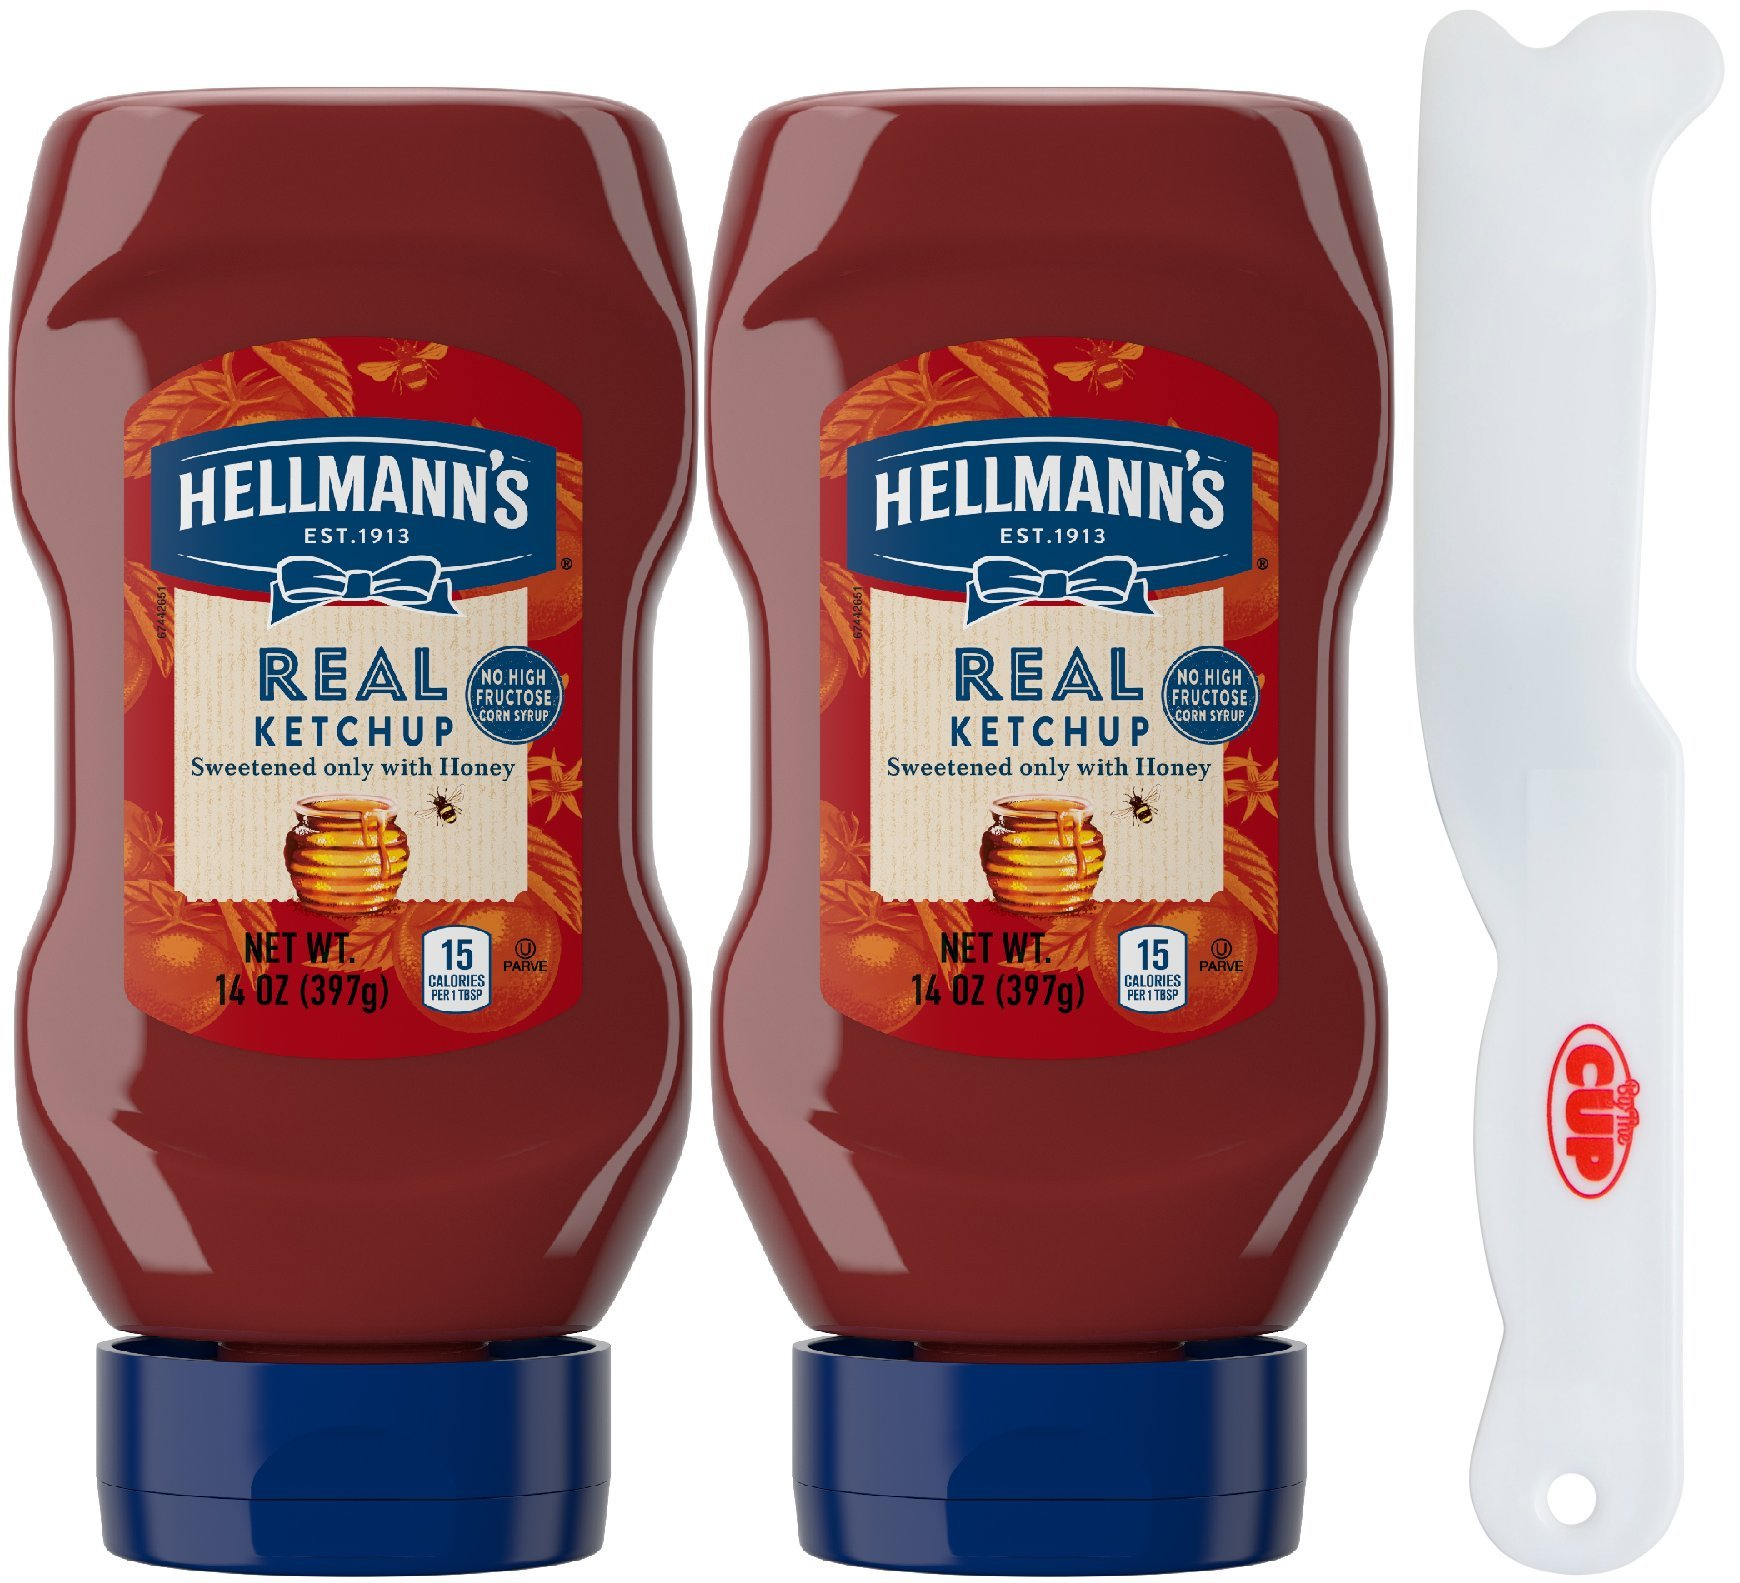 Hellmann's Real Ketchup - Gluten Free, Non-GMO Sourced Ingredients, Sweetened Only with Honey, 14 Ounce Squeeze Bottles (Pack of 2) - with Exclusive By The Cup Spreader